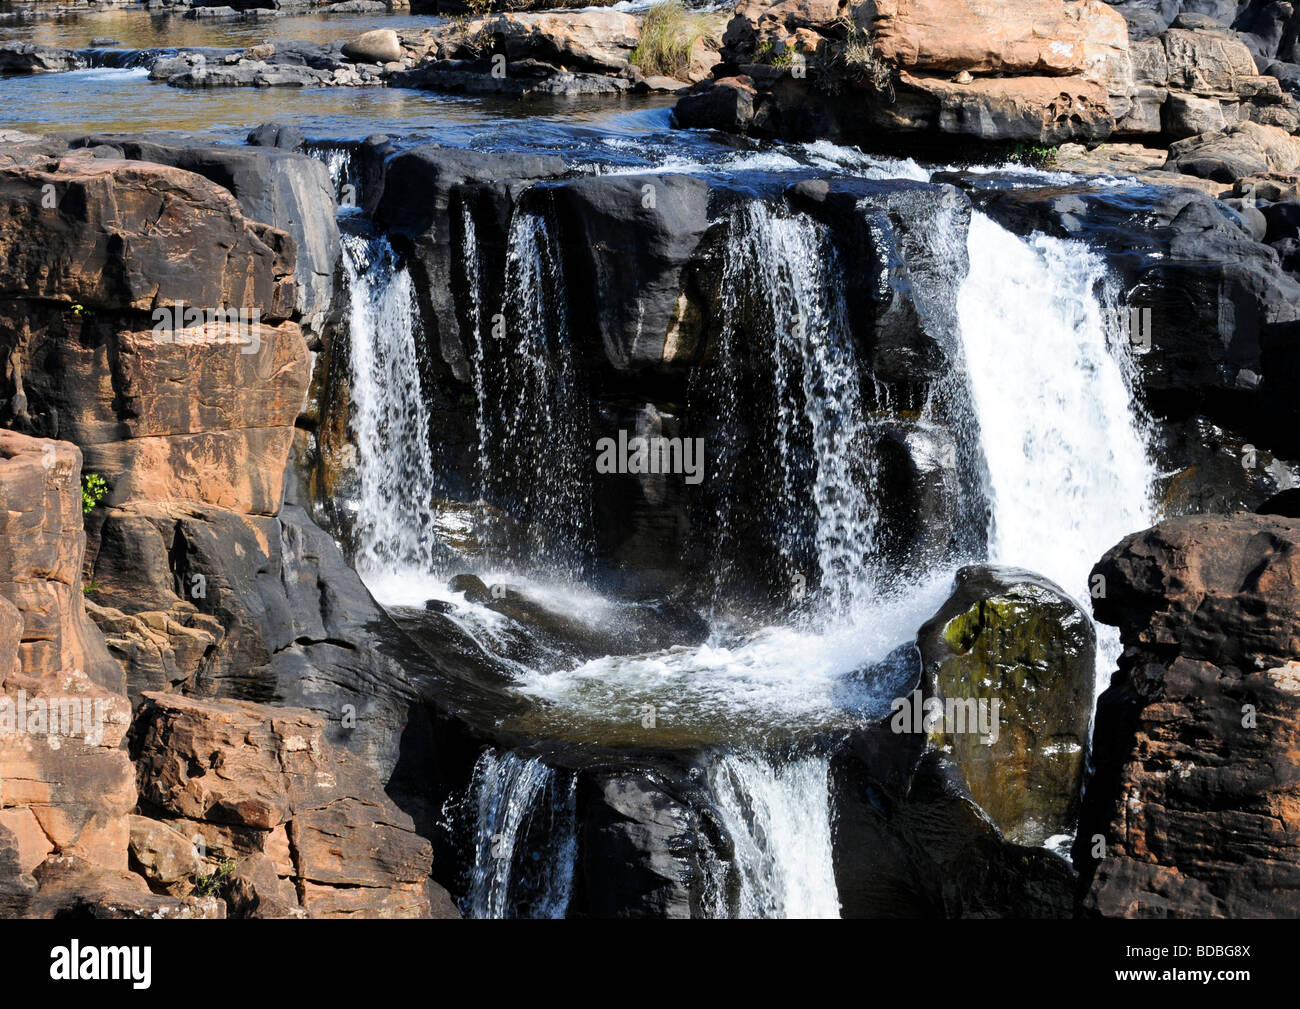 One wonder of South Africa is where water of river Blyde falls on unusual formation of colourful rocks creating - Stock Image